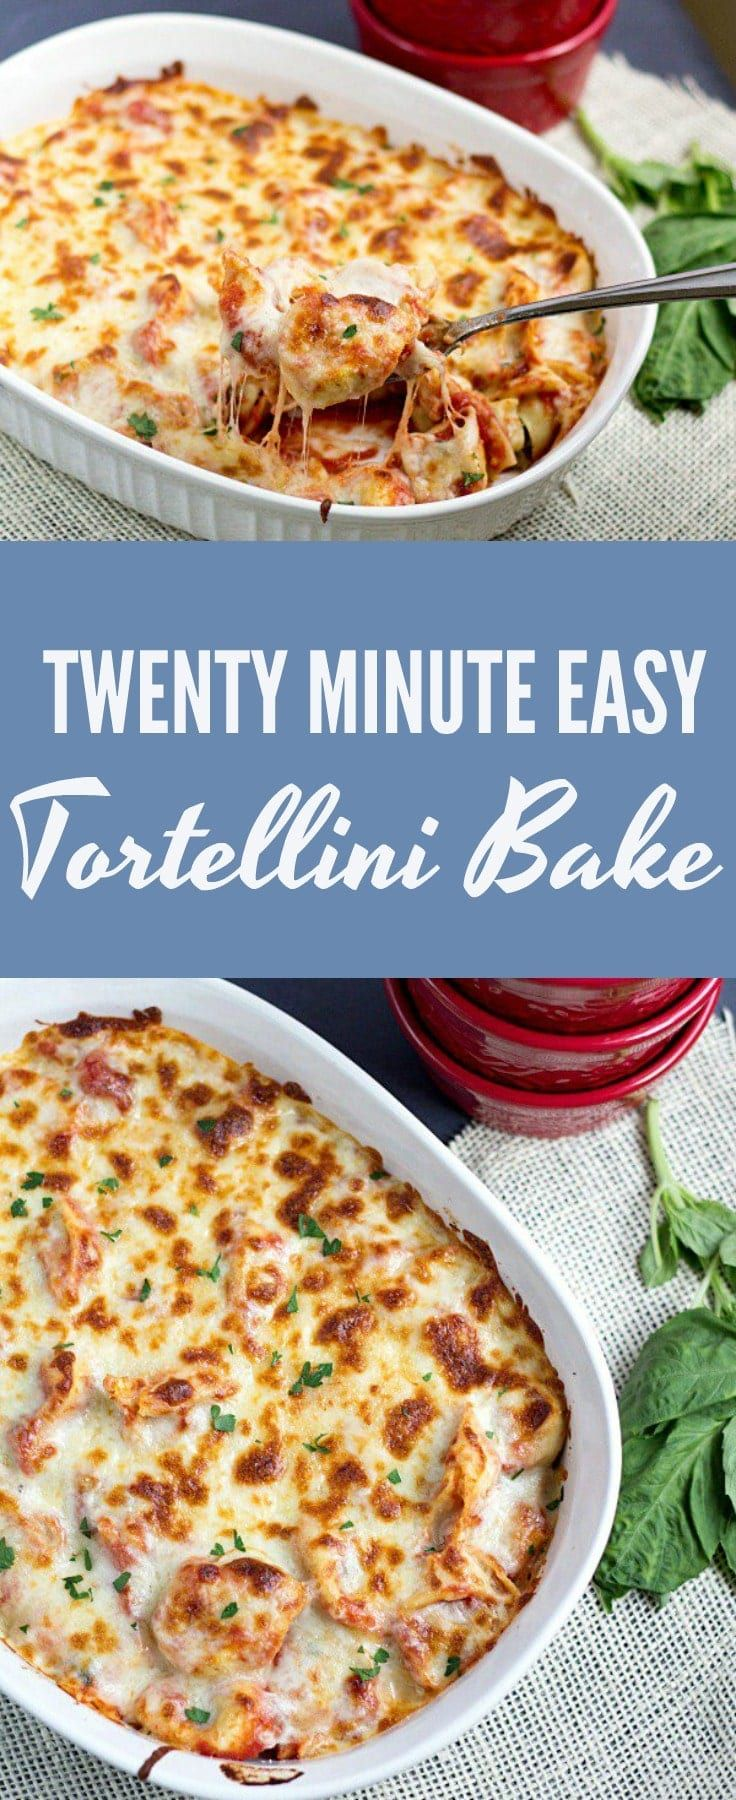 Twenty Minute Easy Tortellini Bake is a perfect weeknight dinner recipe. Youll have minimal cleanu